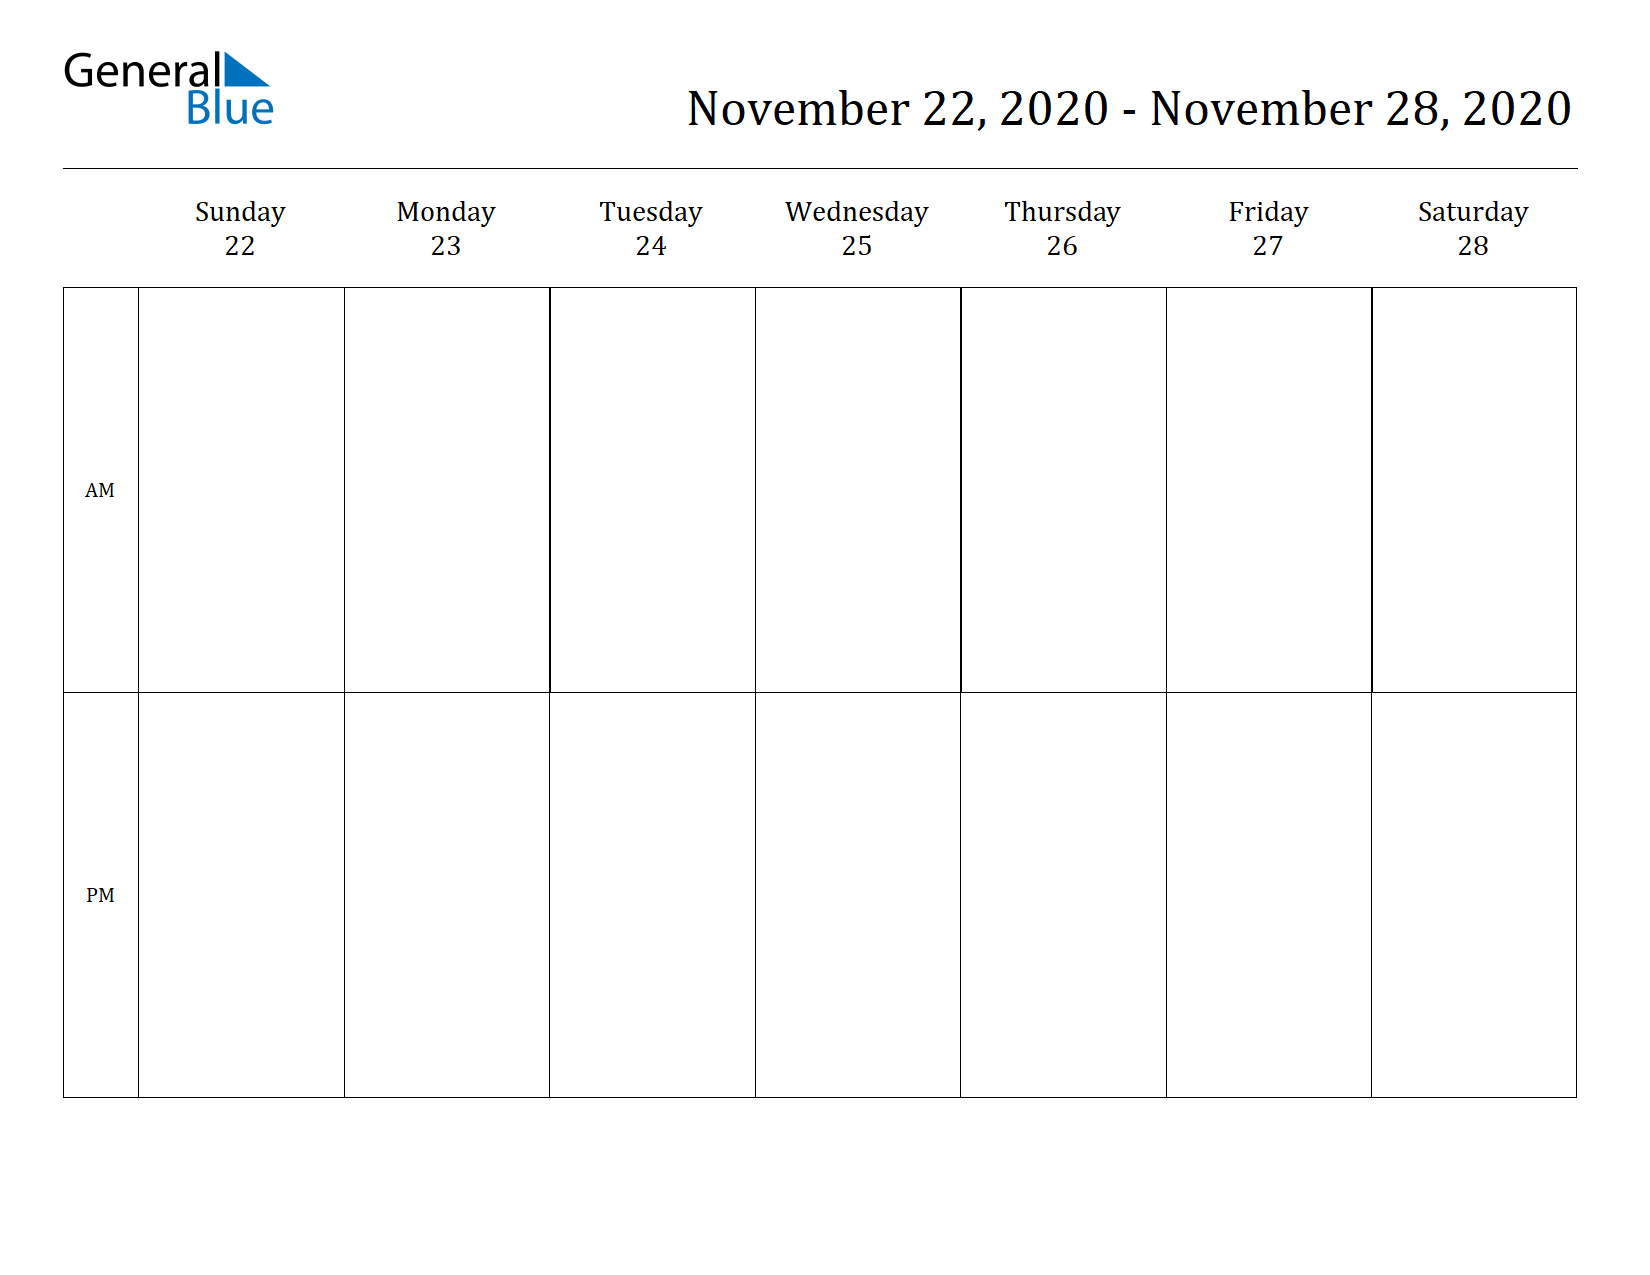 Weekly Calendar for Nov 22, 2020 to Nov 28, 2020